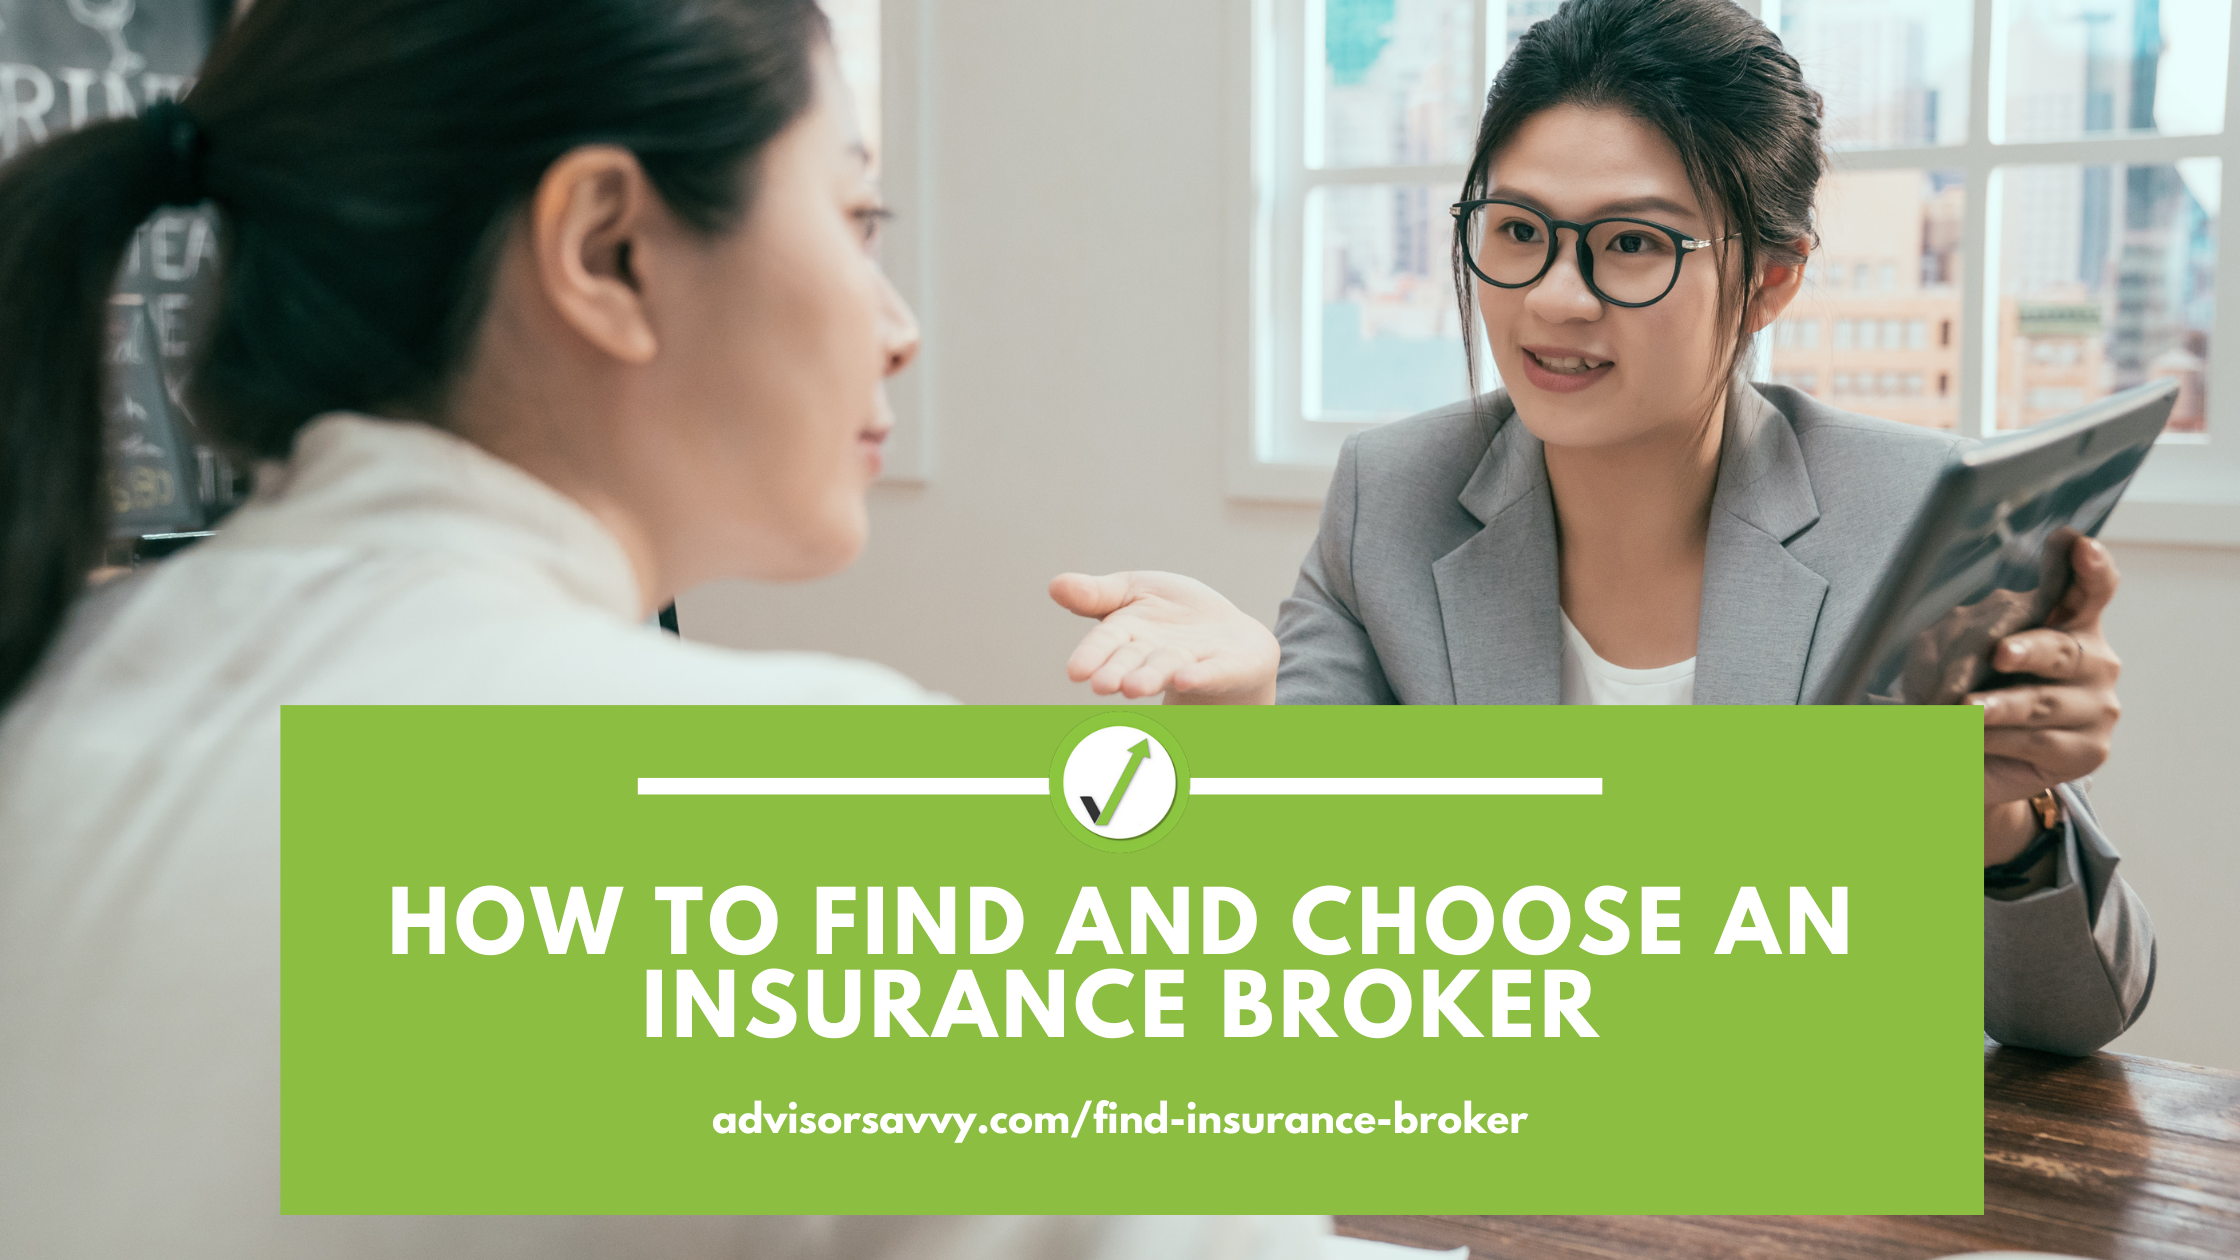 Hwo to find and choose an insurance broker